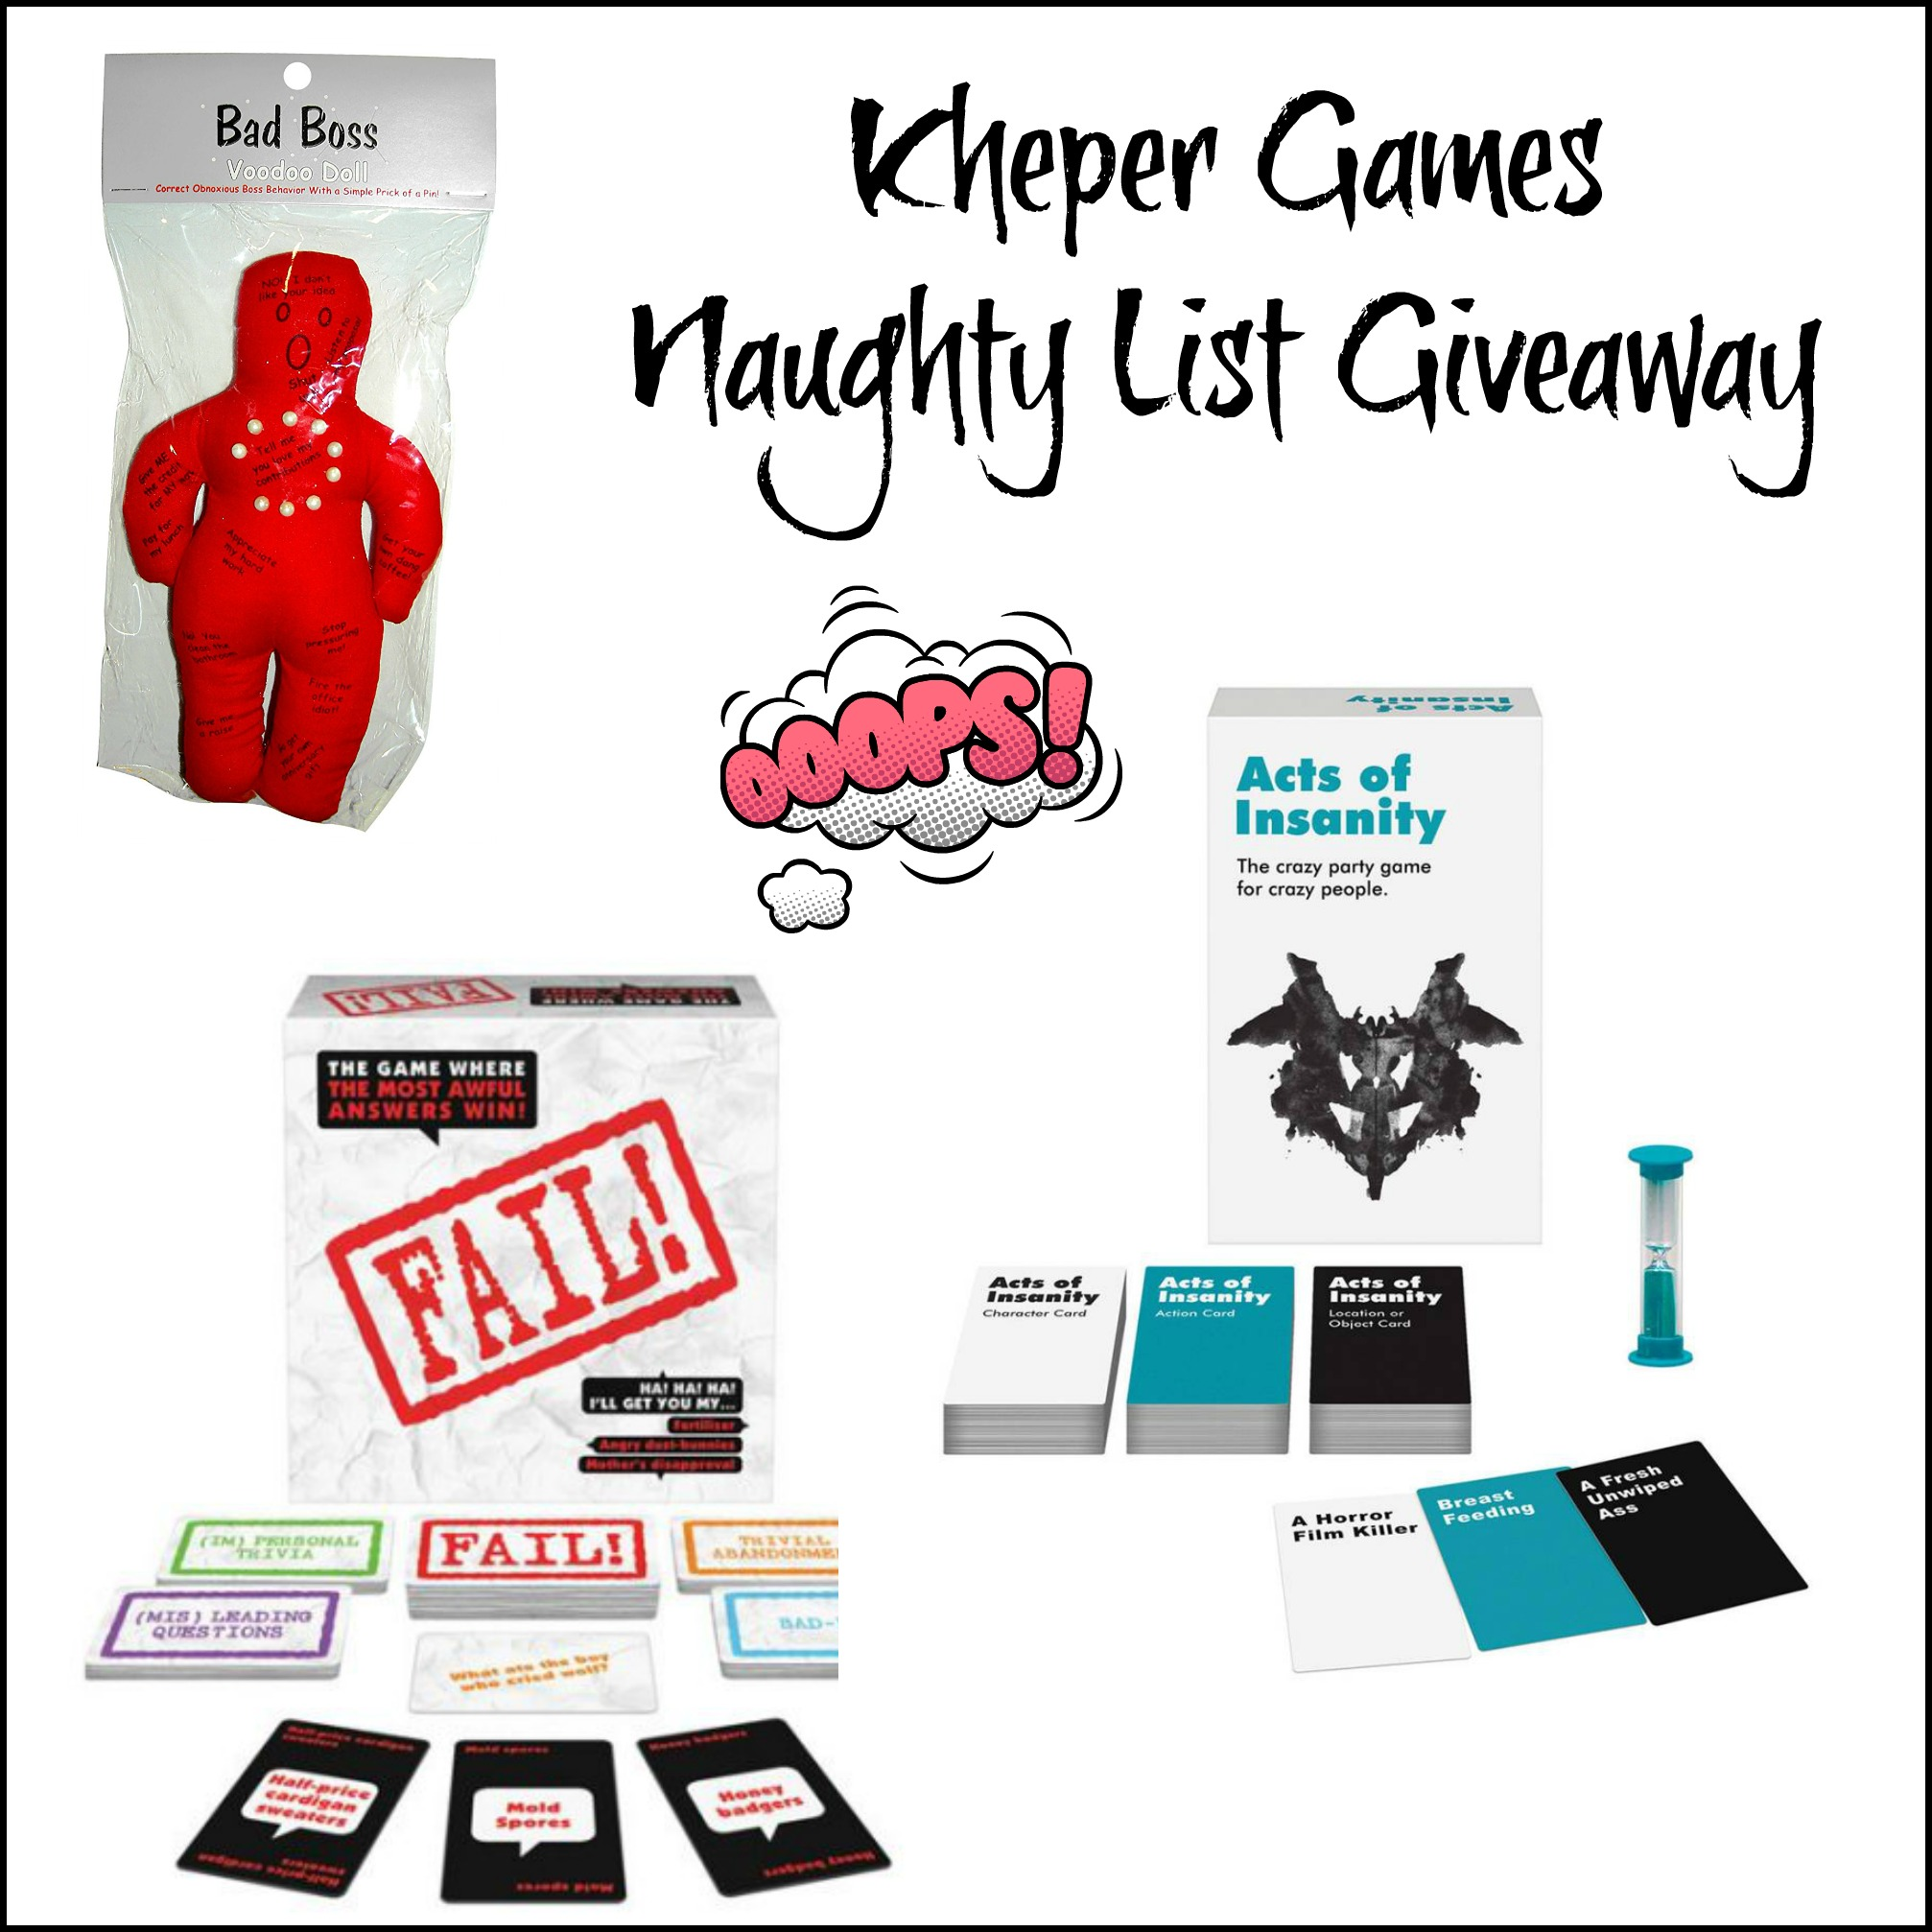 Kheper Games Naughty List Giveaway